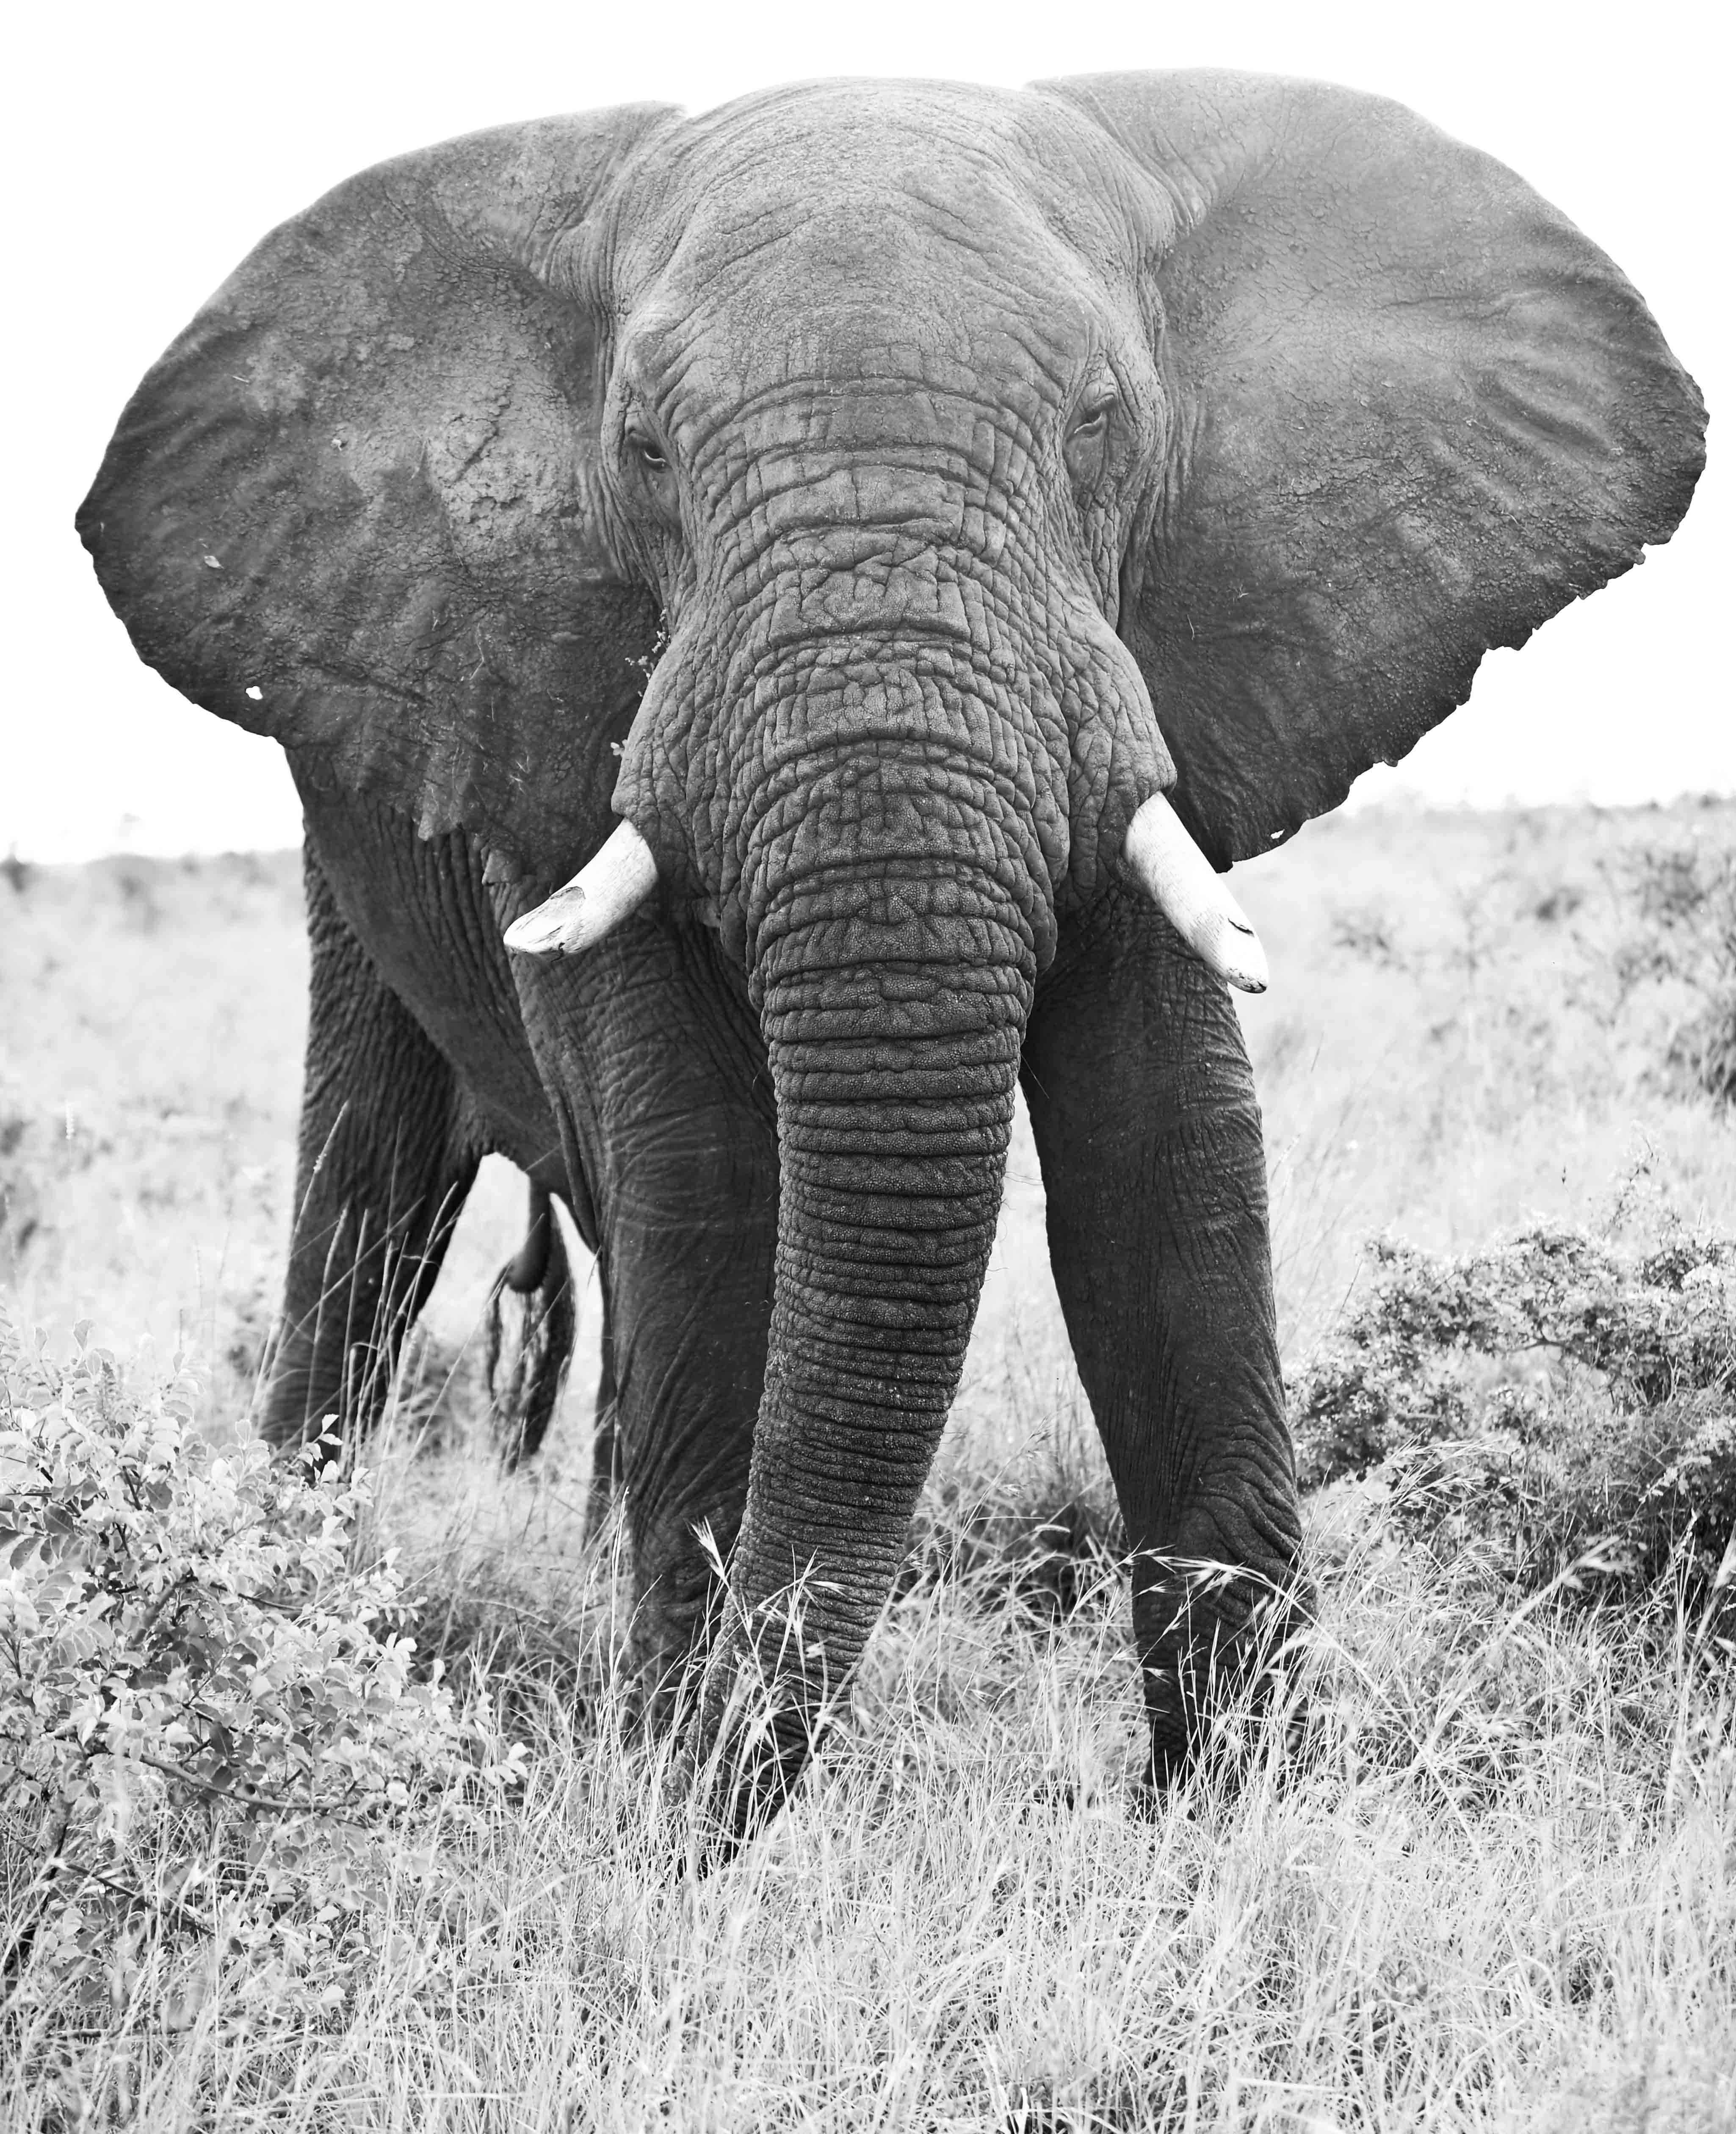 Elephant, ZA ©Johannes Ratermann